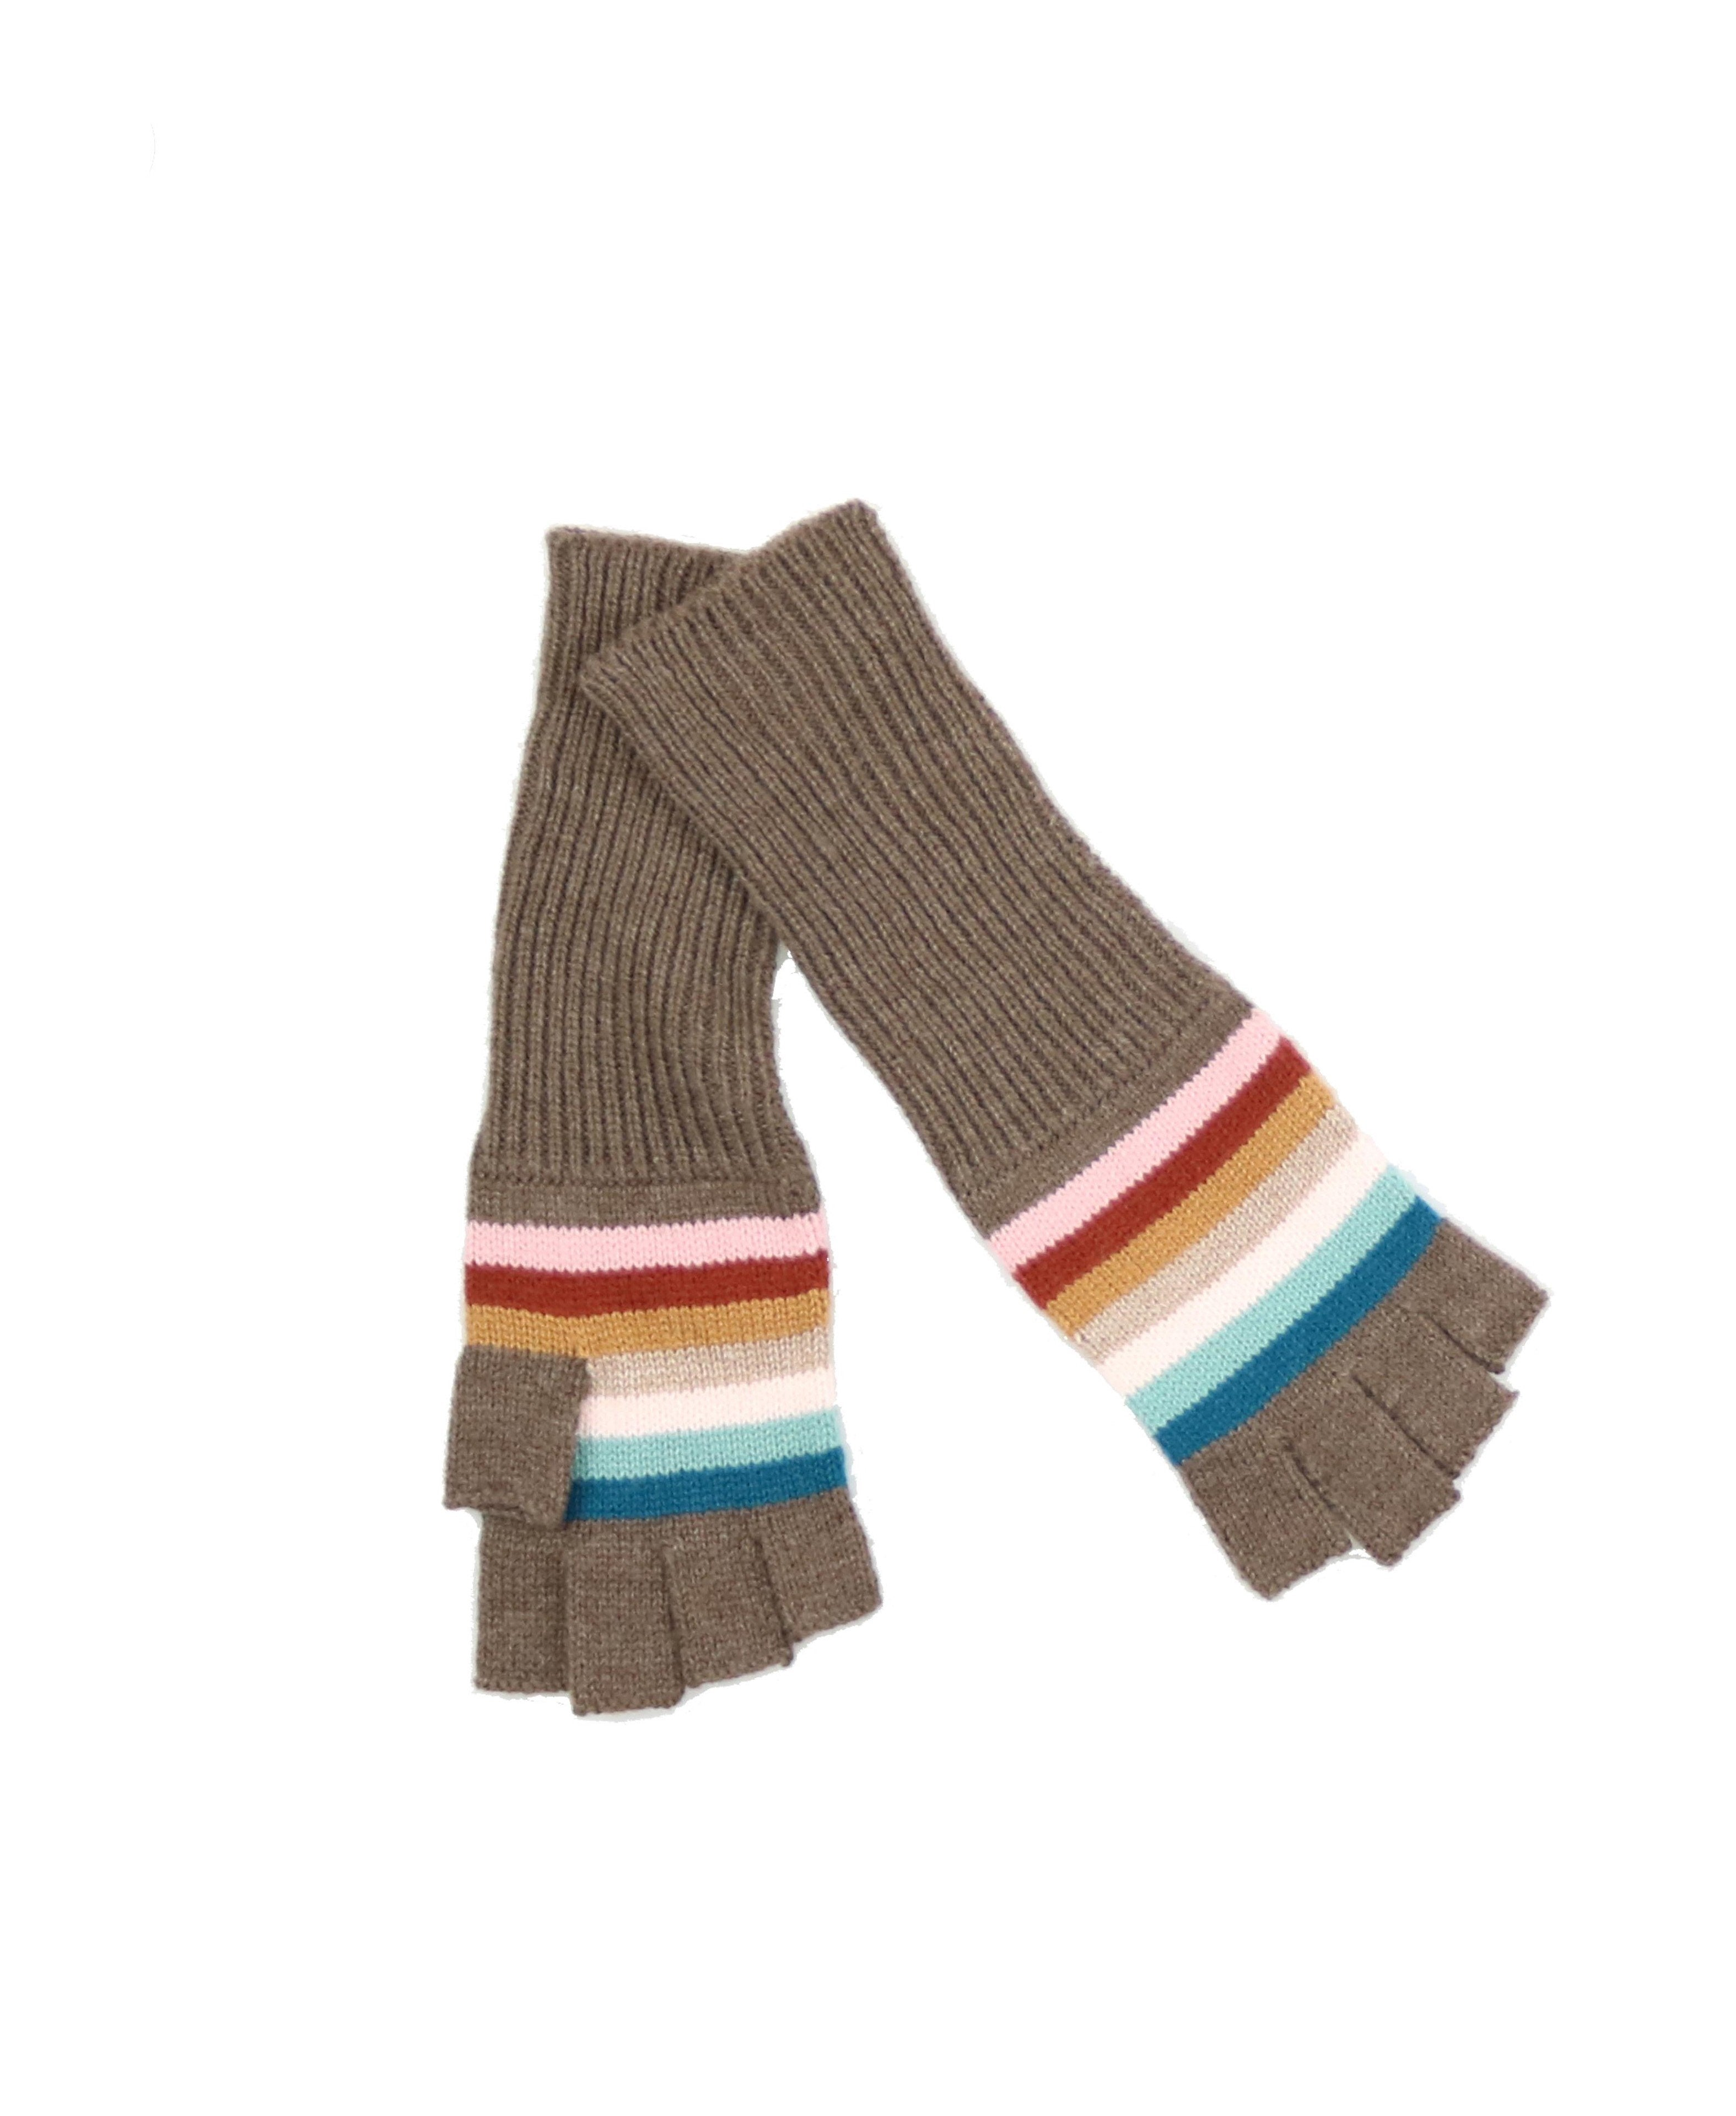 Striped Fingerless Acrylic Knit Glove